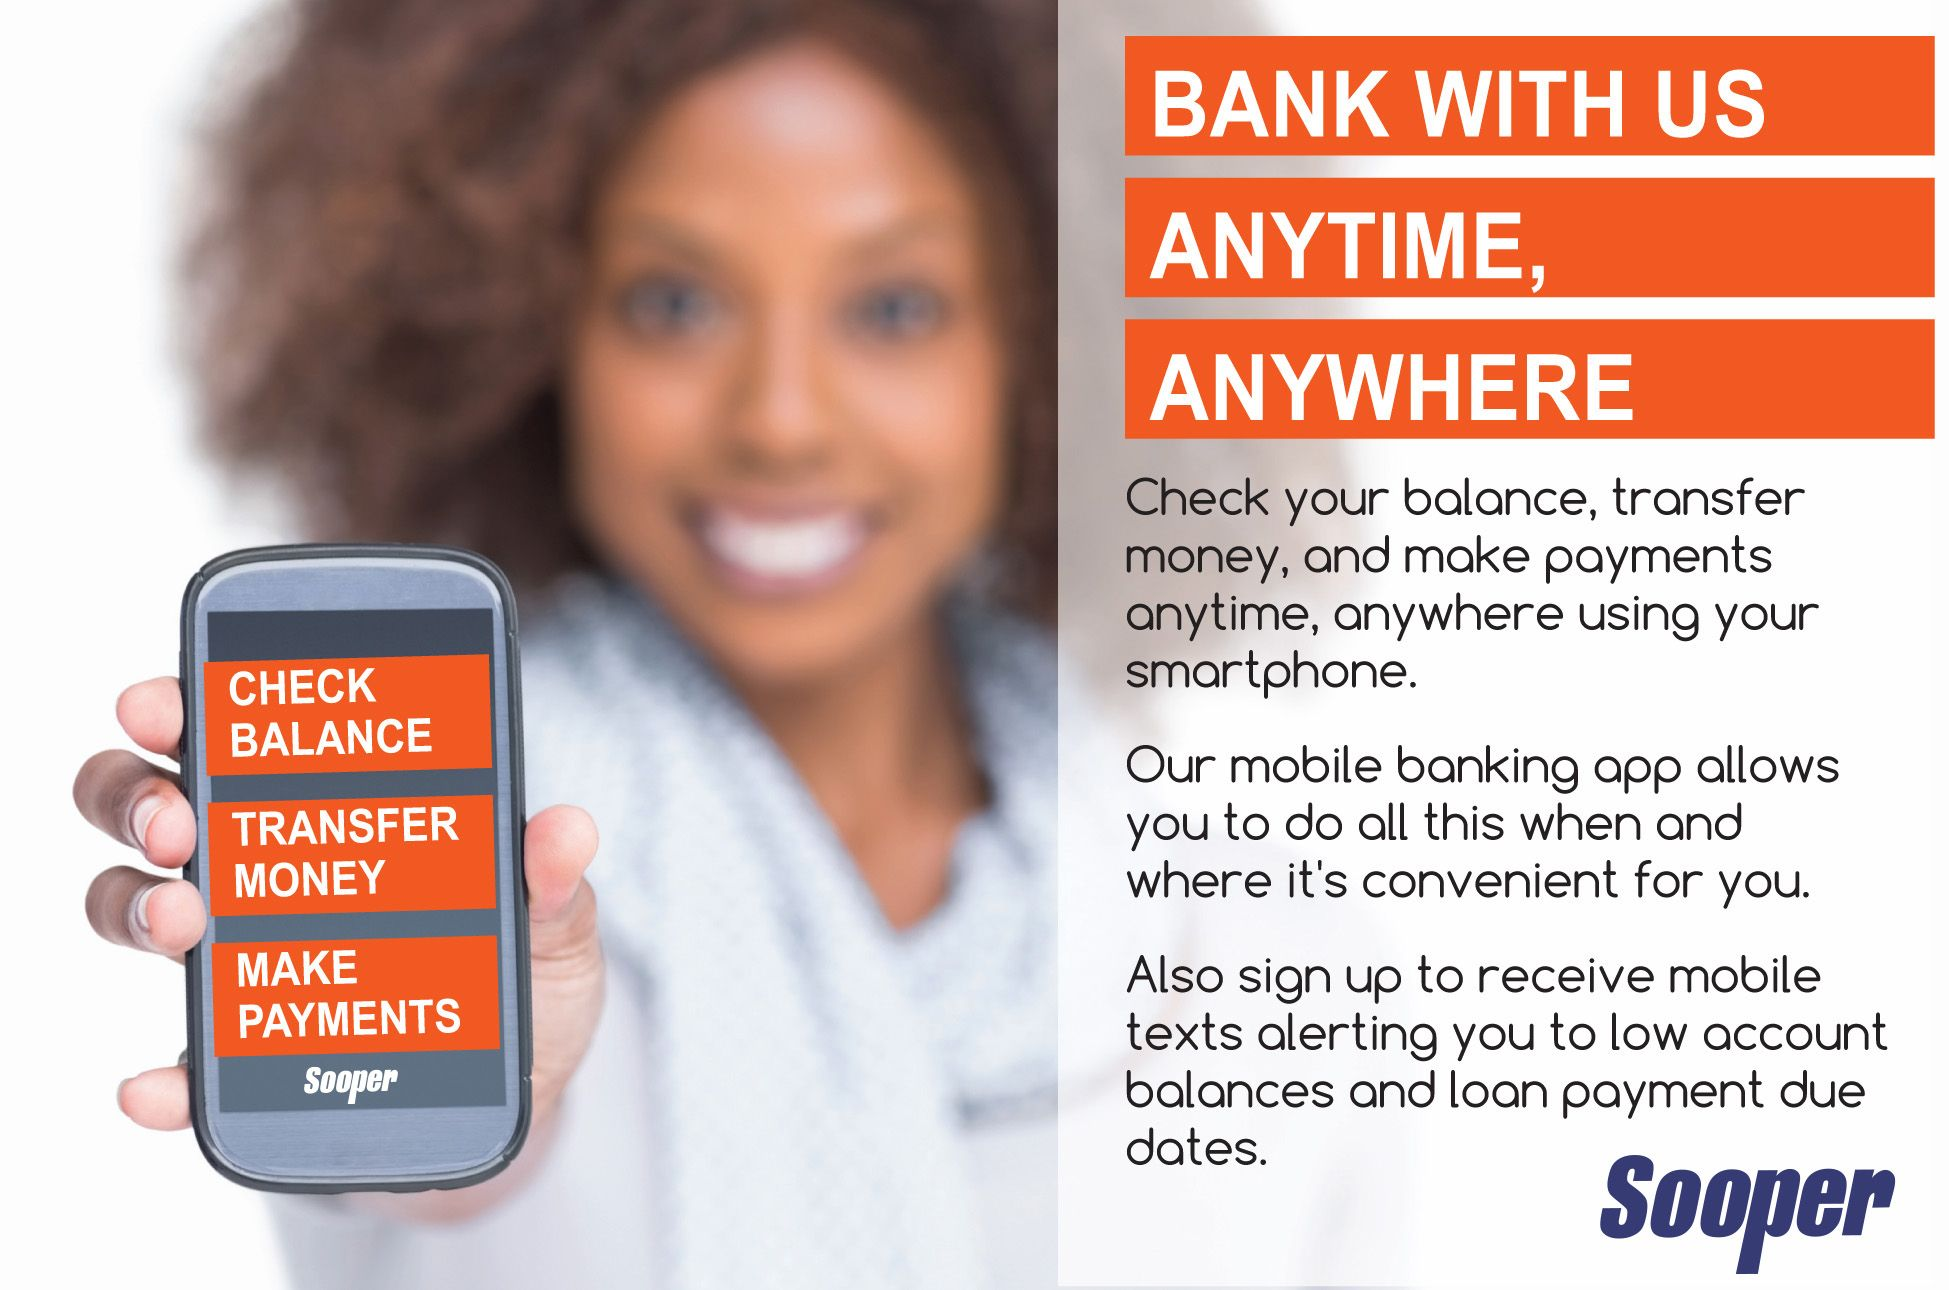 Bank anywhere with soopermobile mobile banking banking